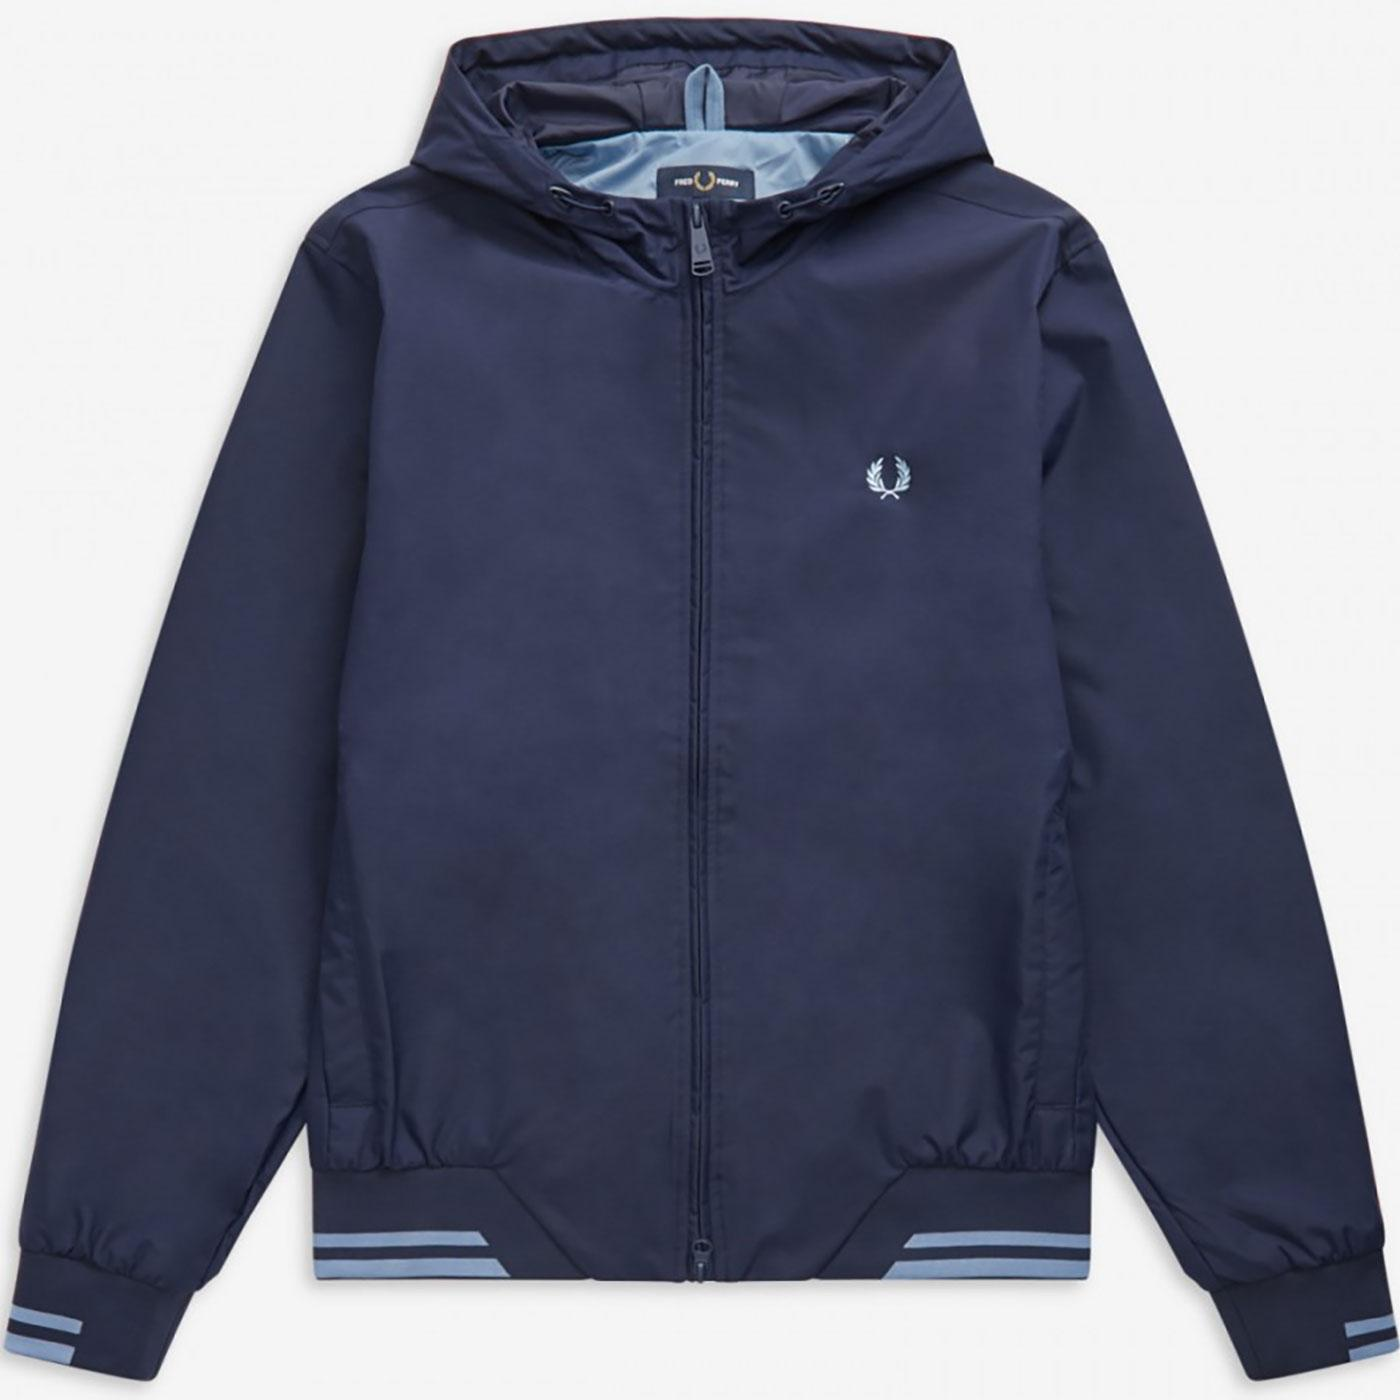 Brentham FRED PERRY Retro Indie Hooded Jacket CB